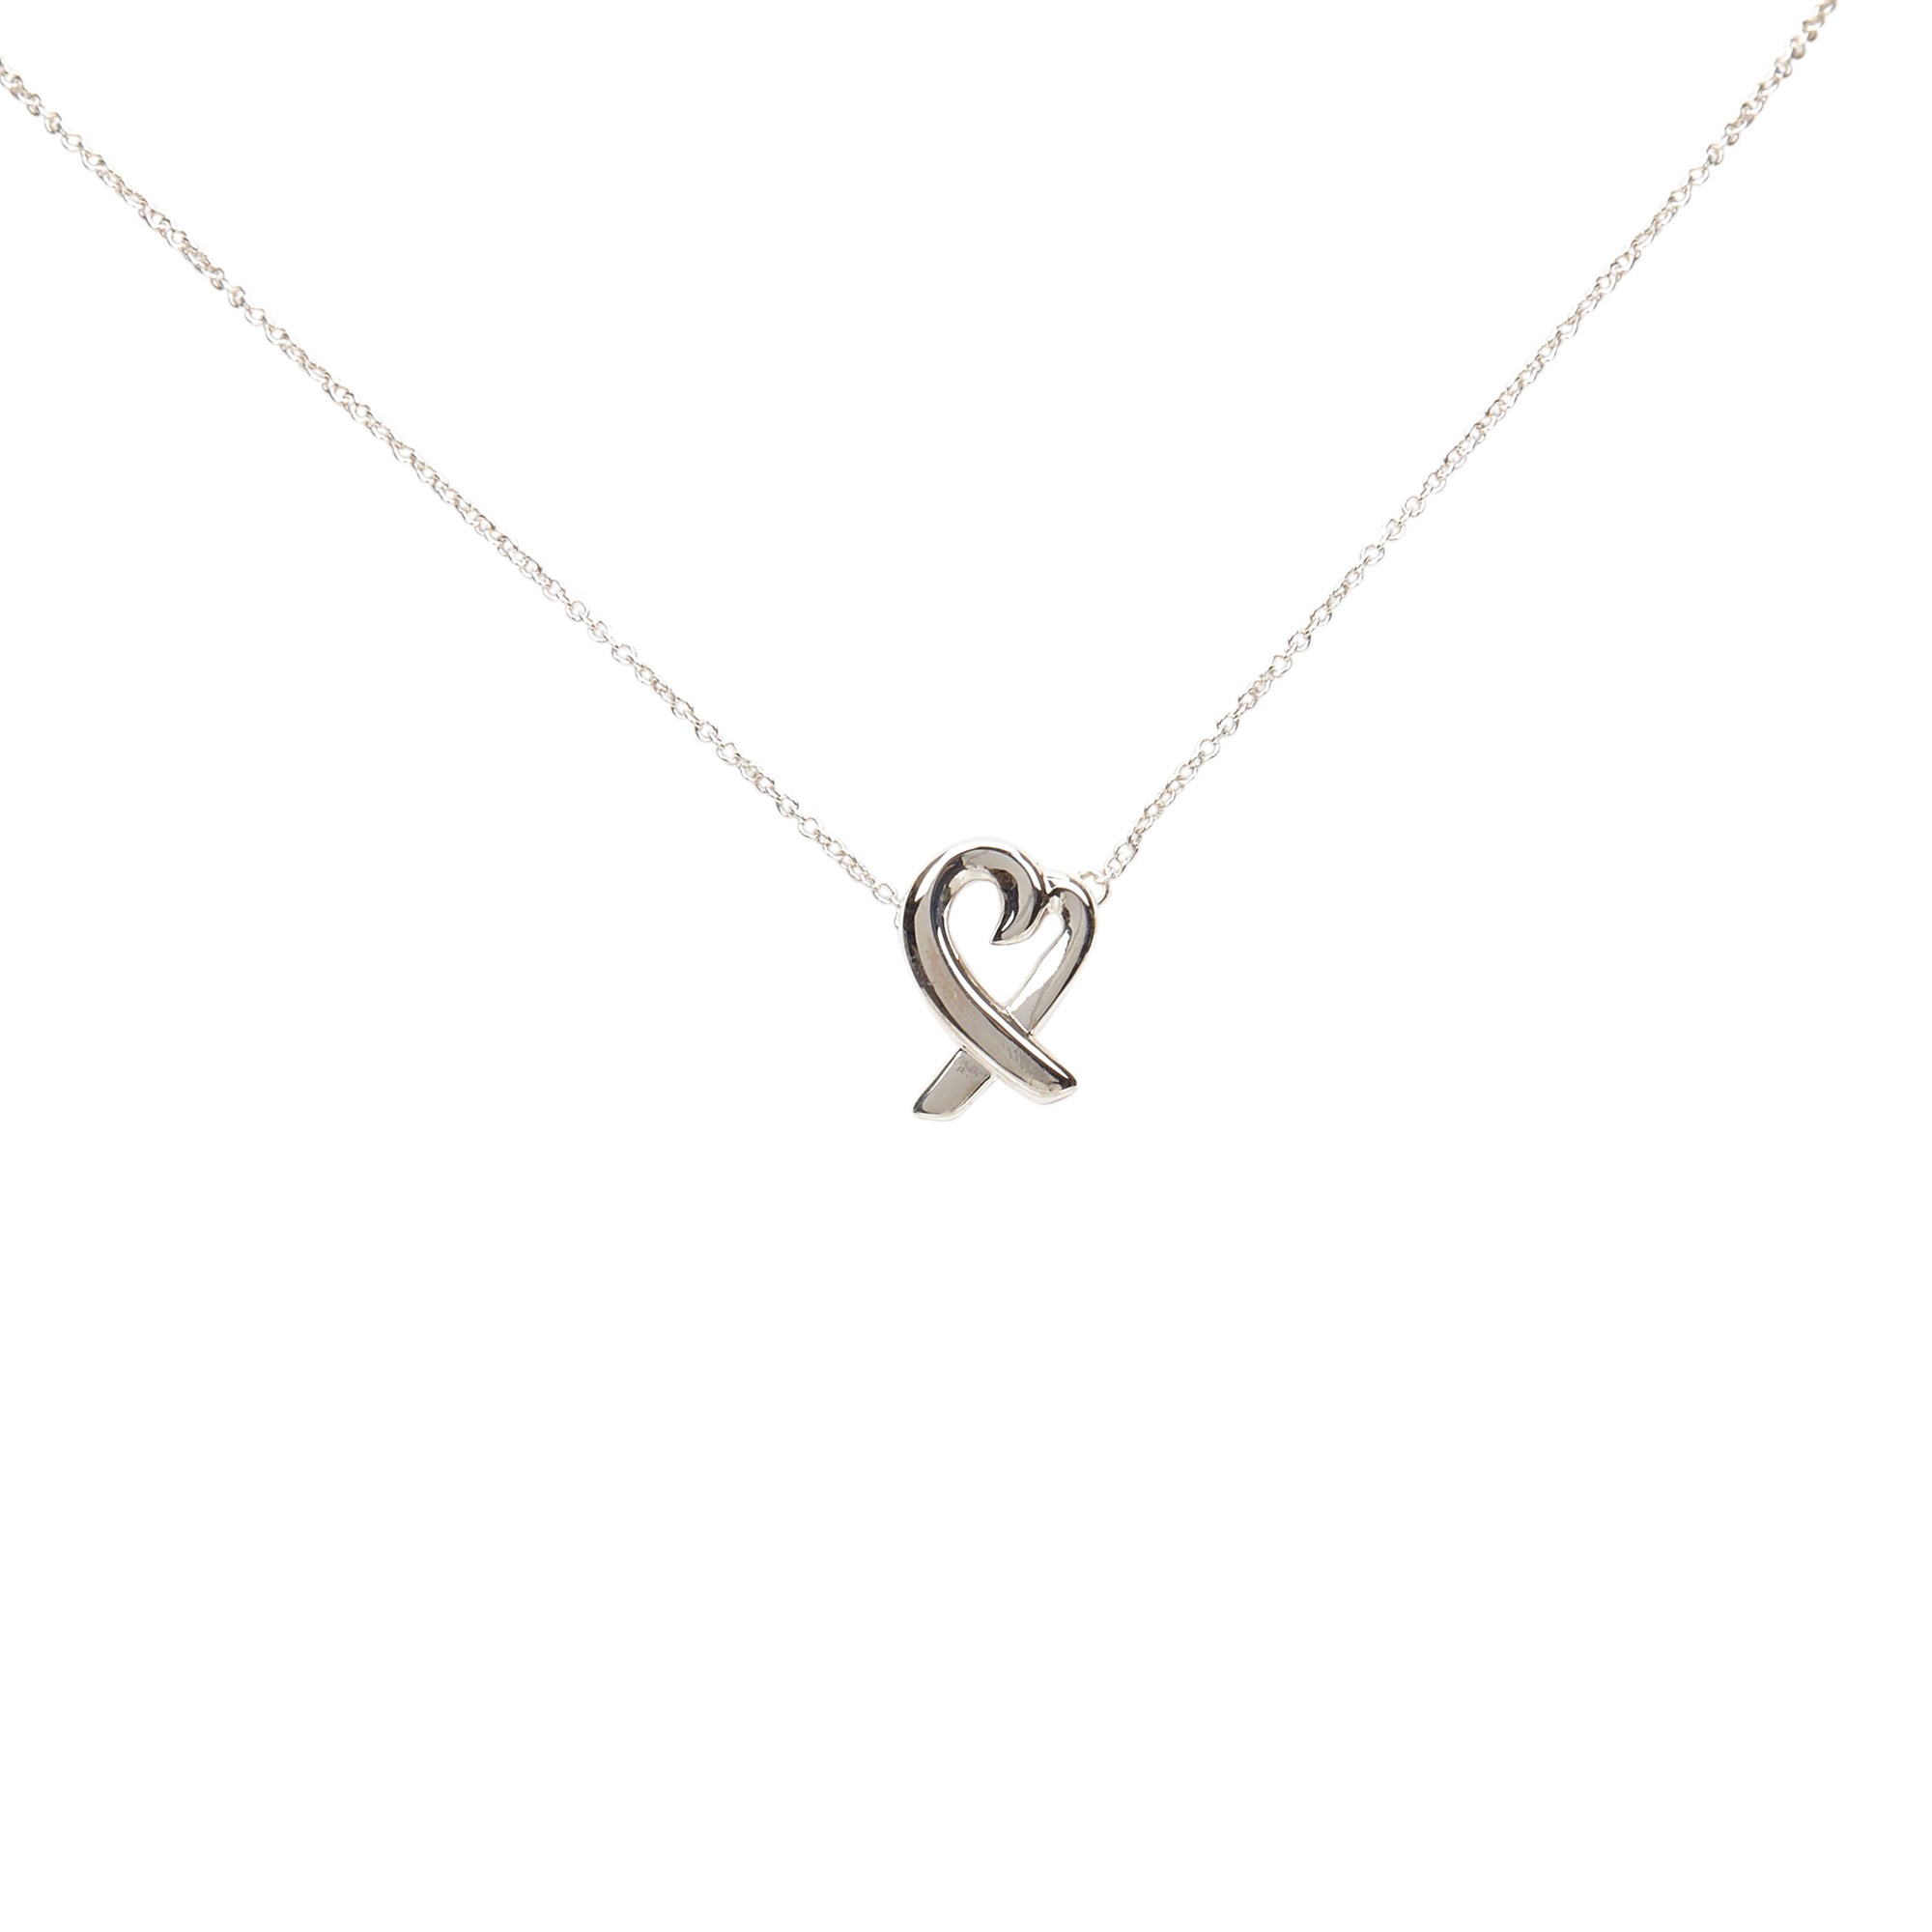 Tiffany & Co. Paloma Picasso Loving Heart Silver Pendant Necklace